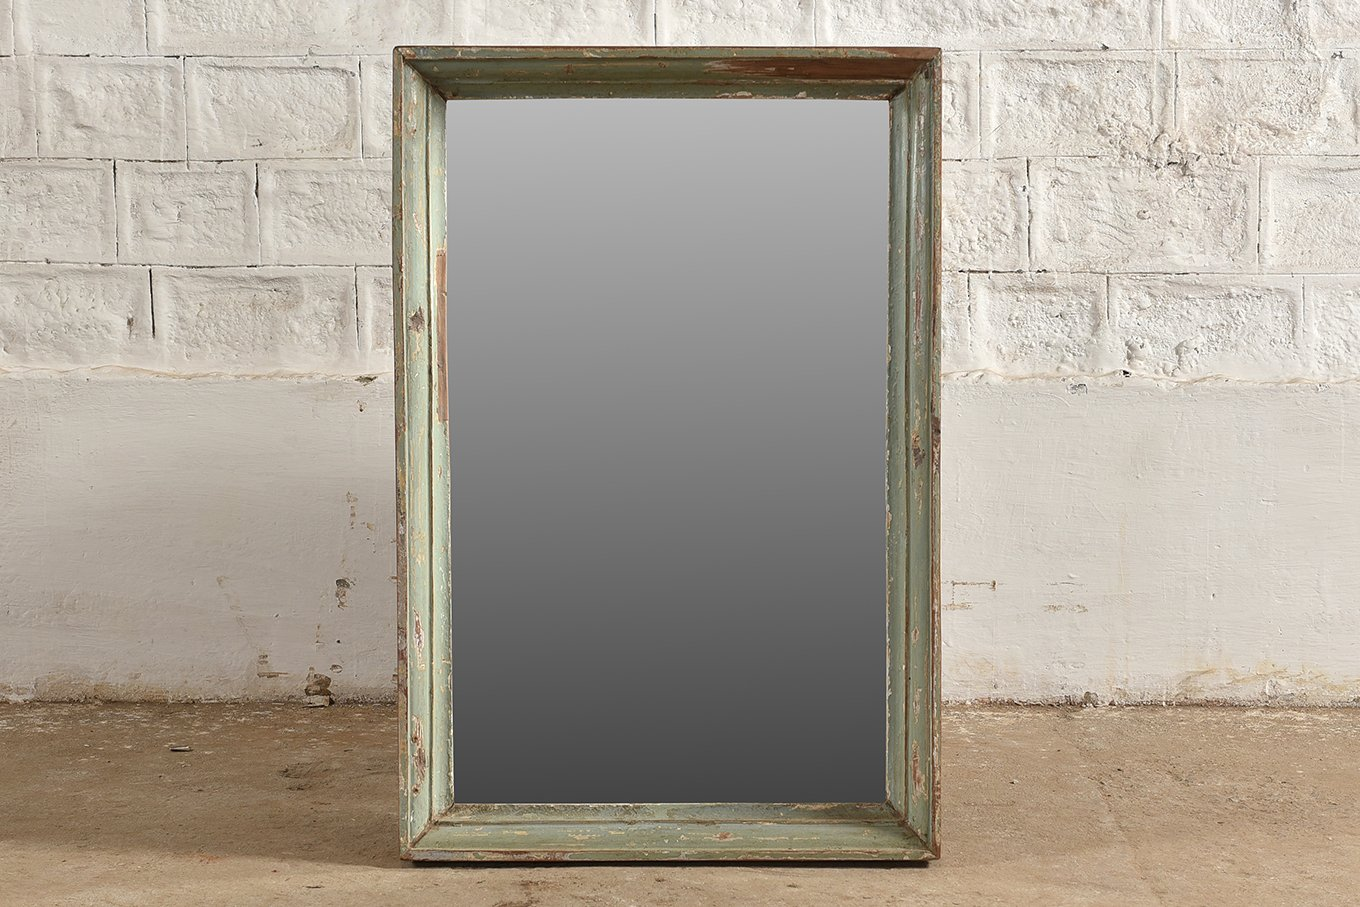 Original rectangle mirror with wooden frame and faded paint